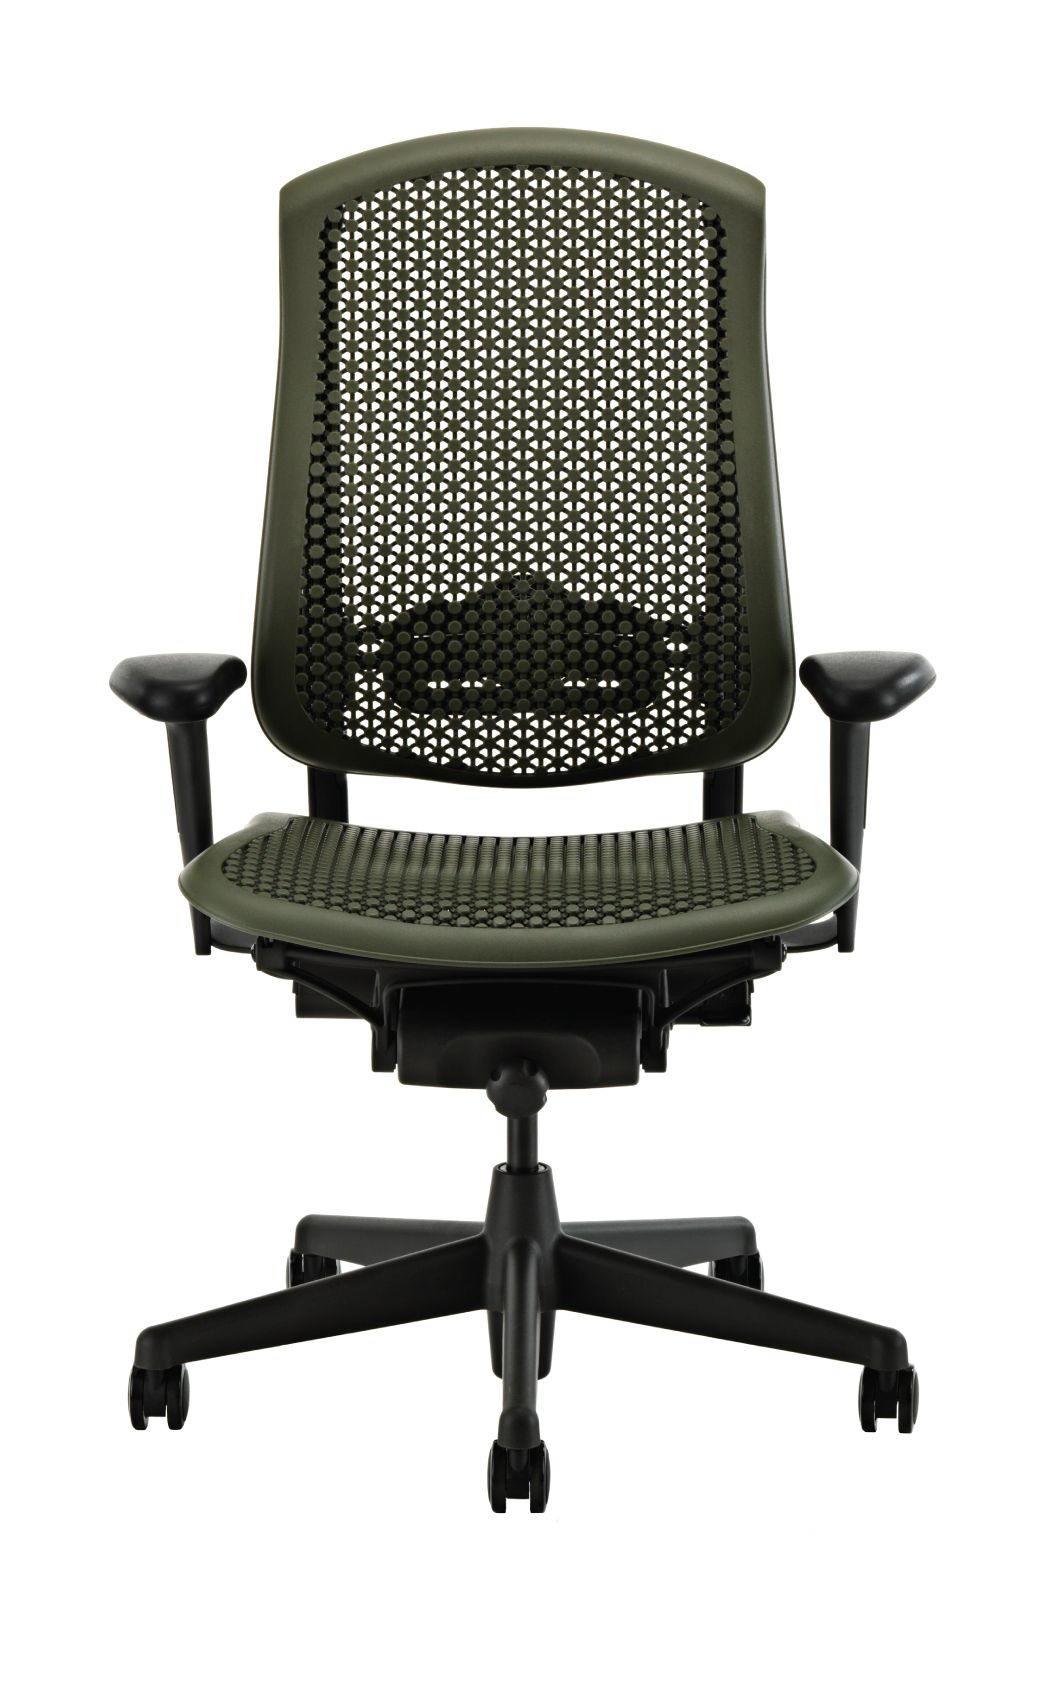 office chair price leather chairs of bath ibsen herman miller celle felt green review